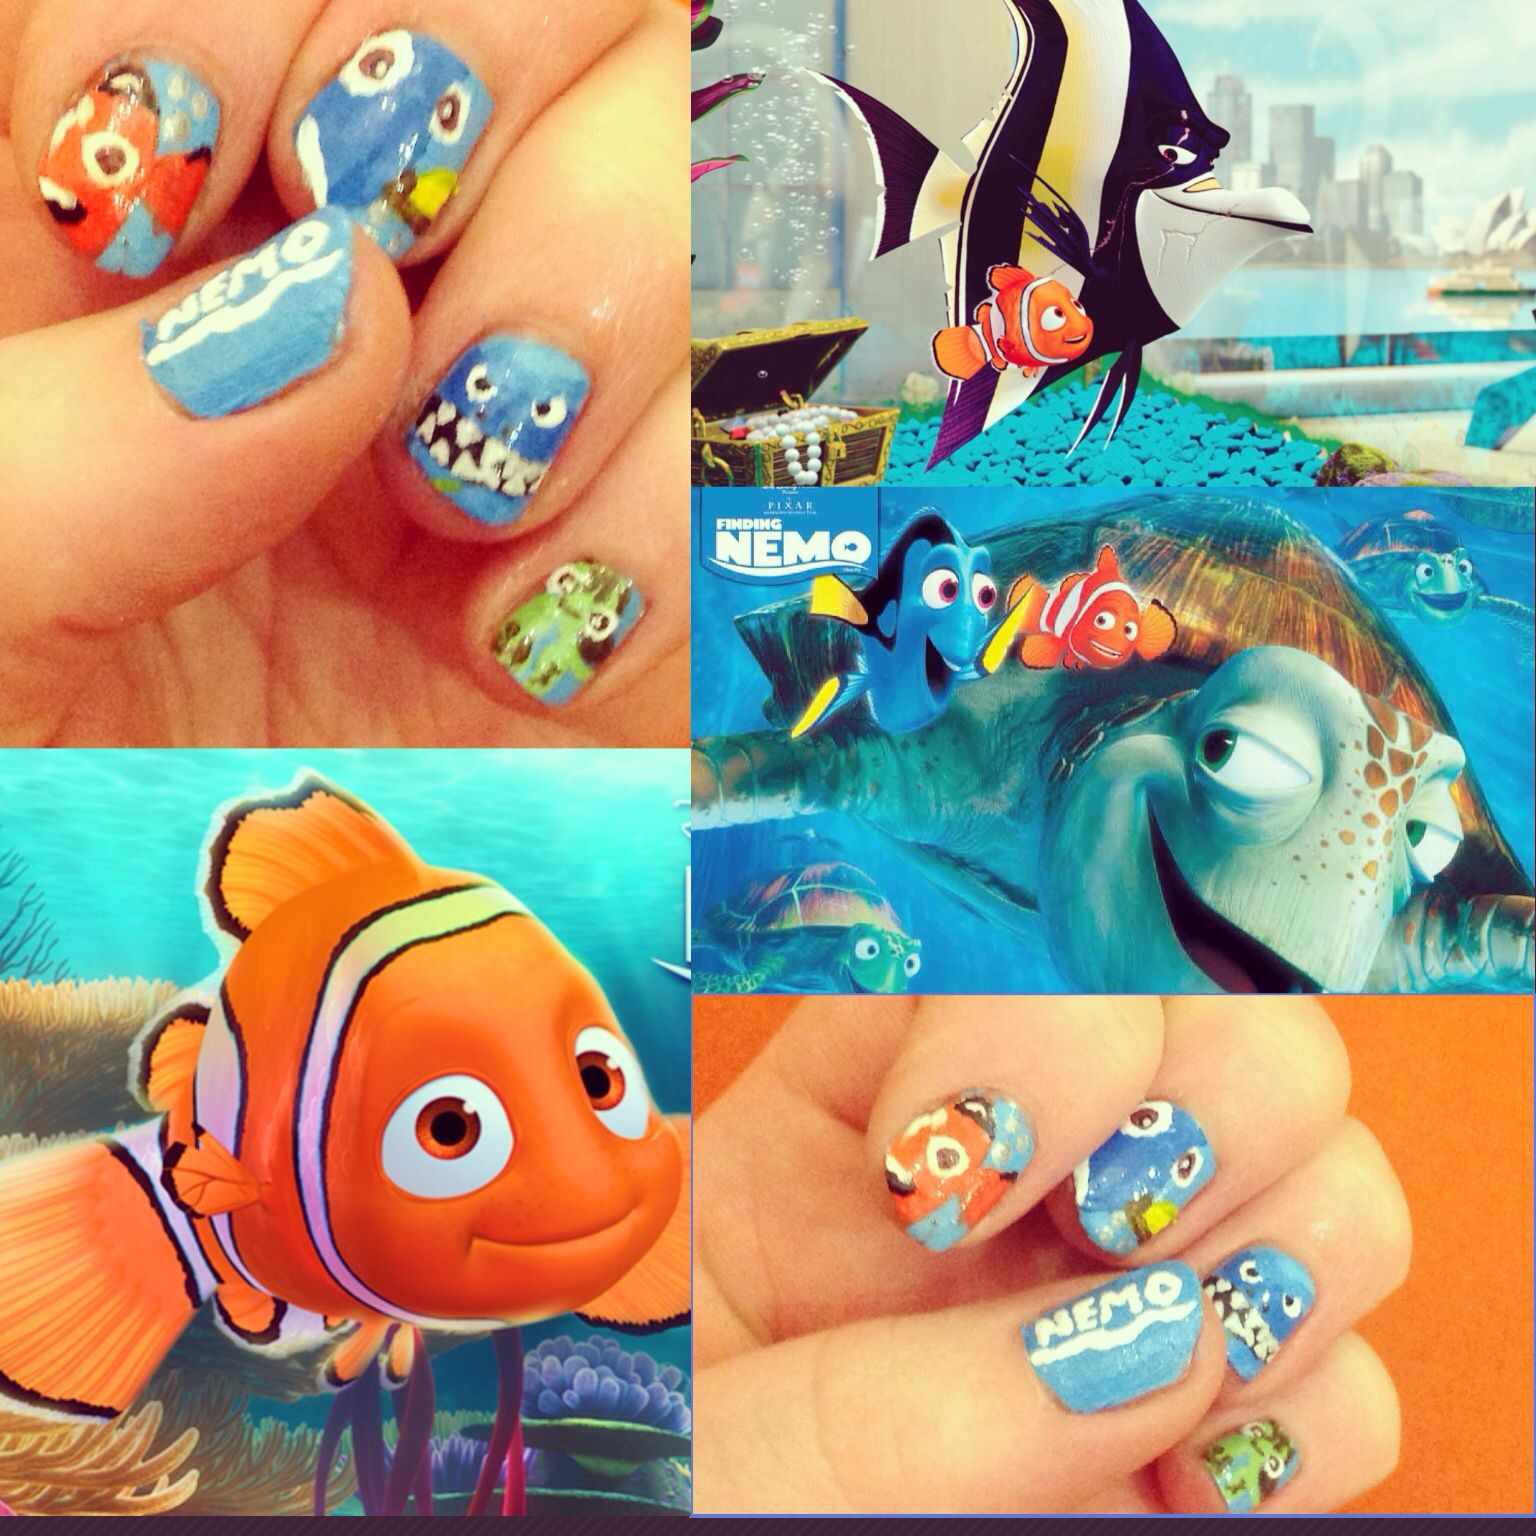 Finding nemo nail art my nails pinterest finding nemo nail art prinsesfo Gallery